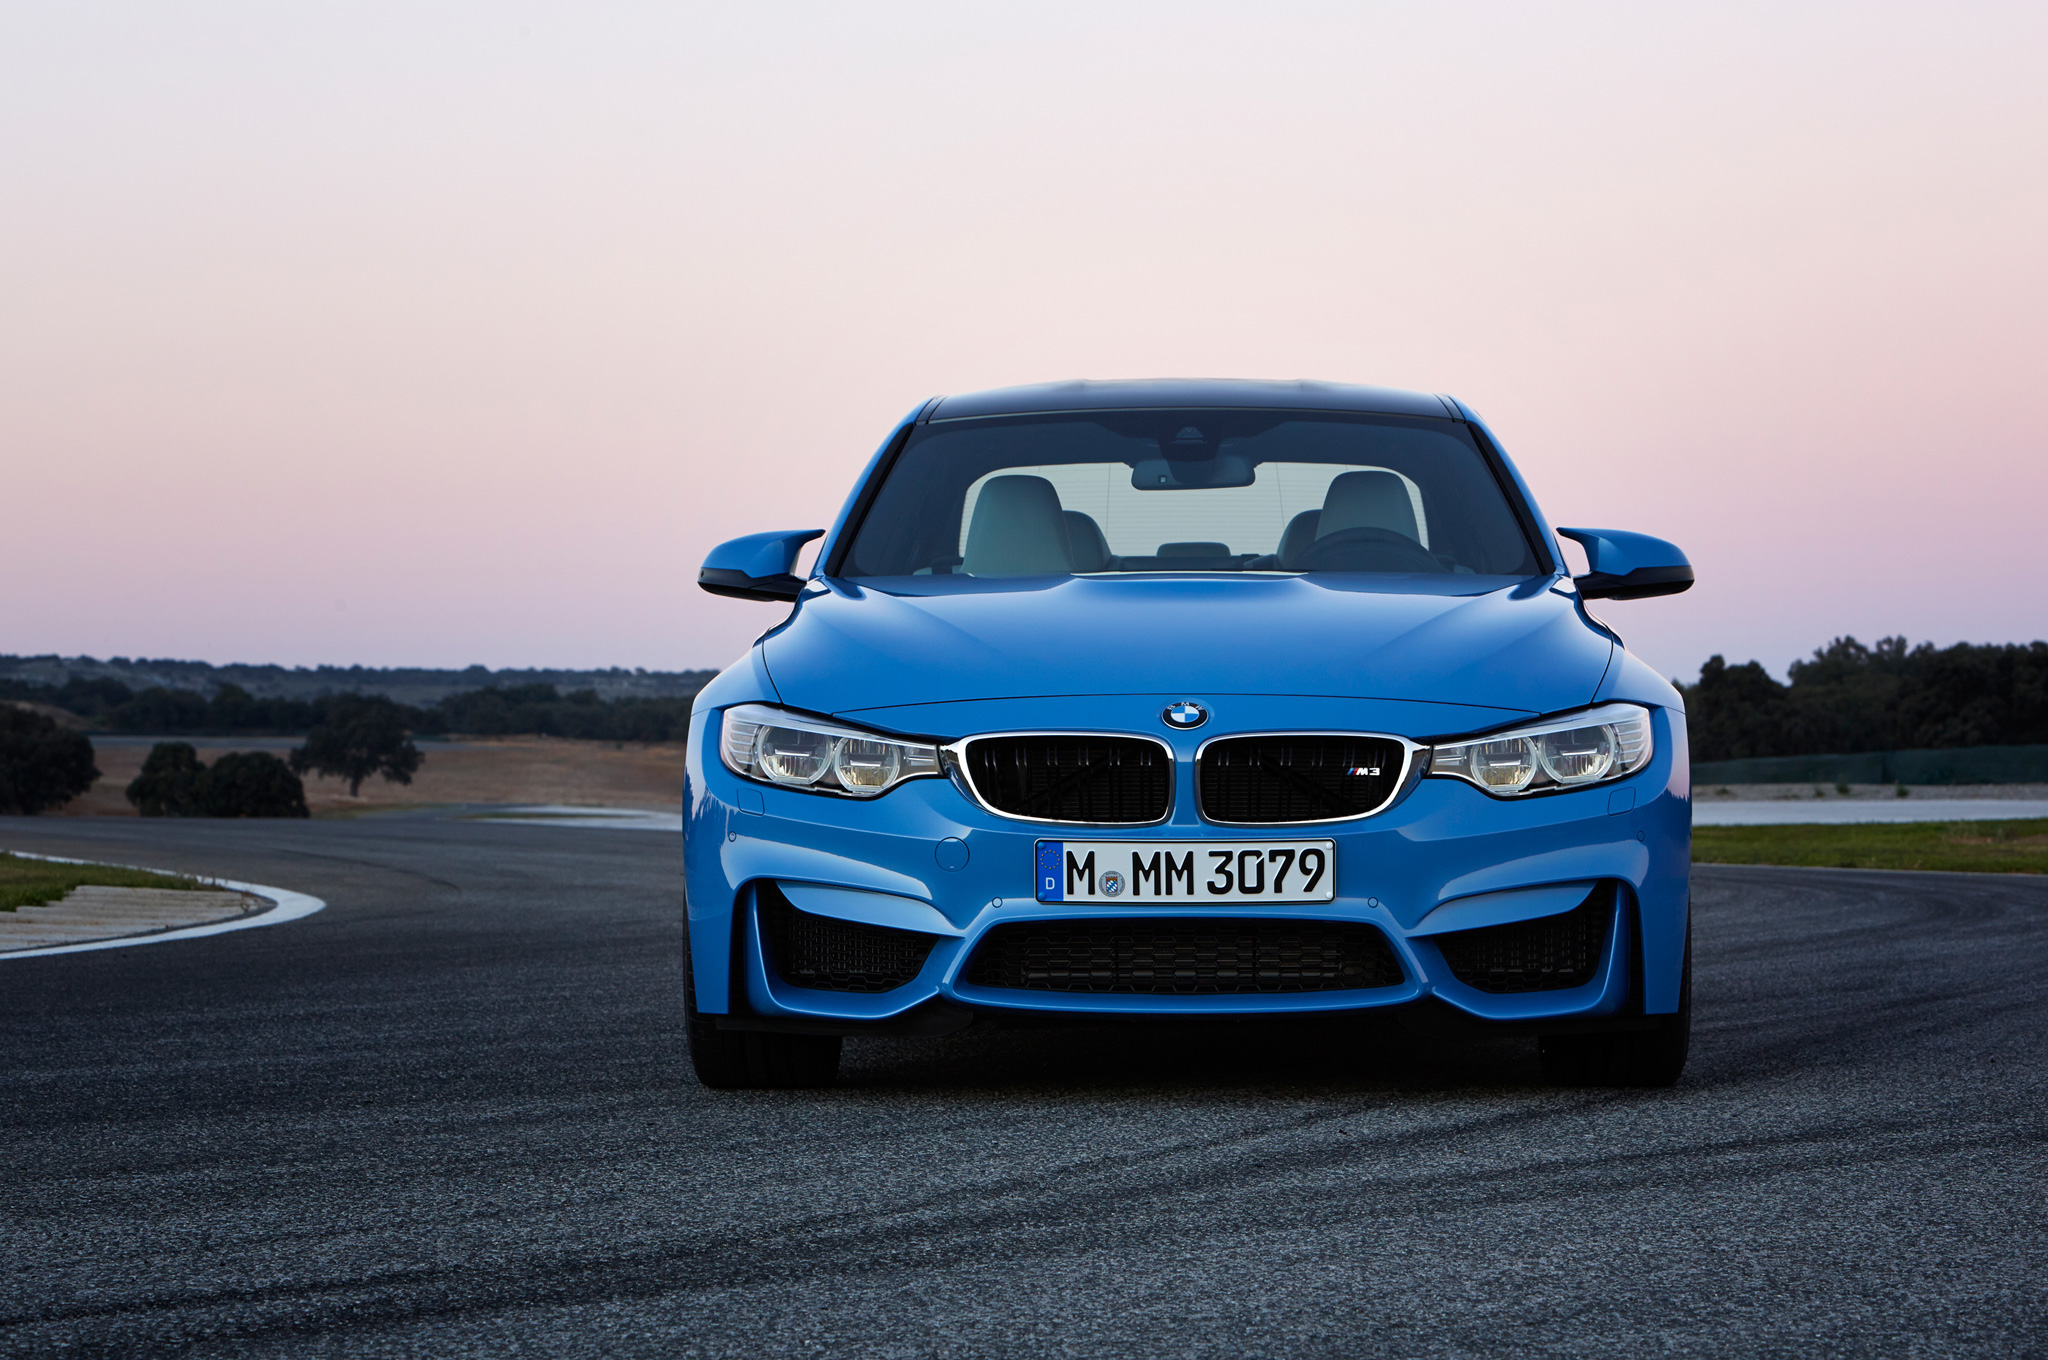 2015 Bmw M3 Front Exterior  (Photo 47 of 55)